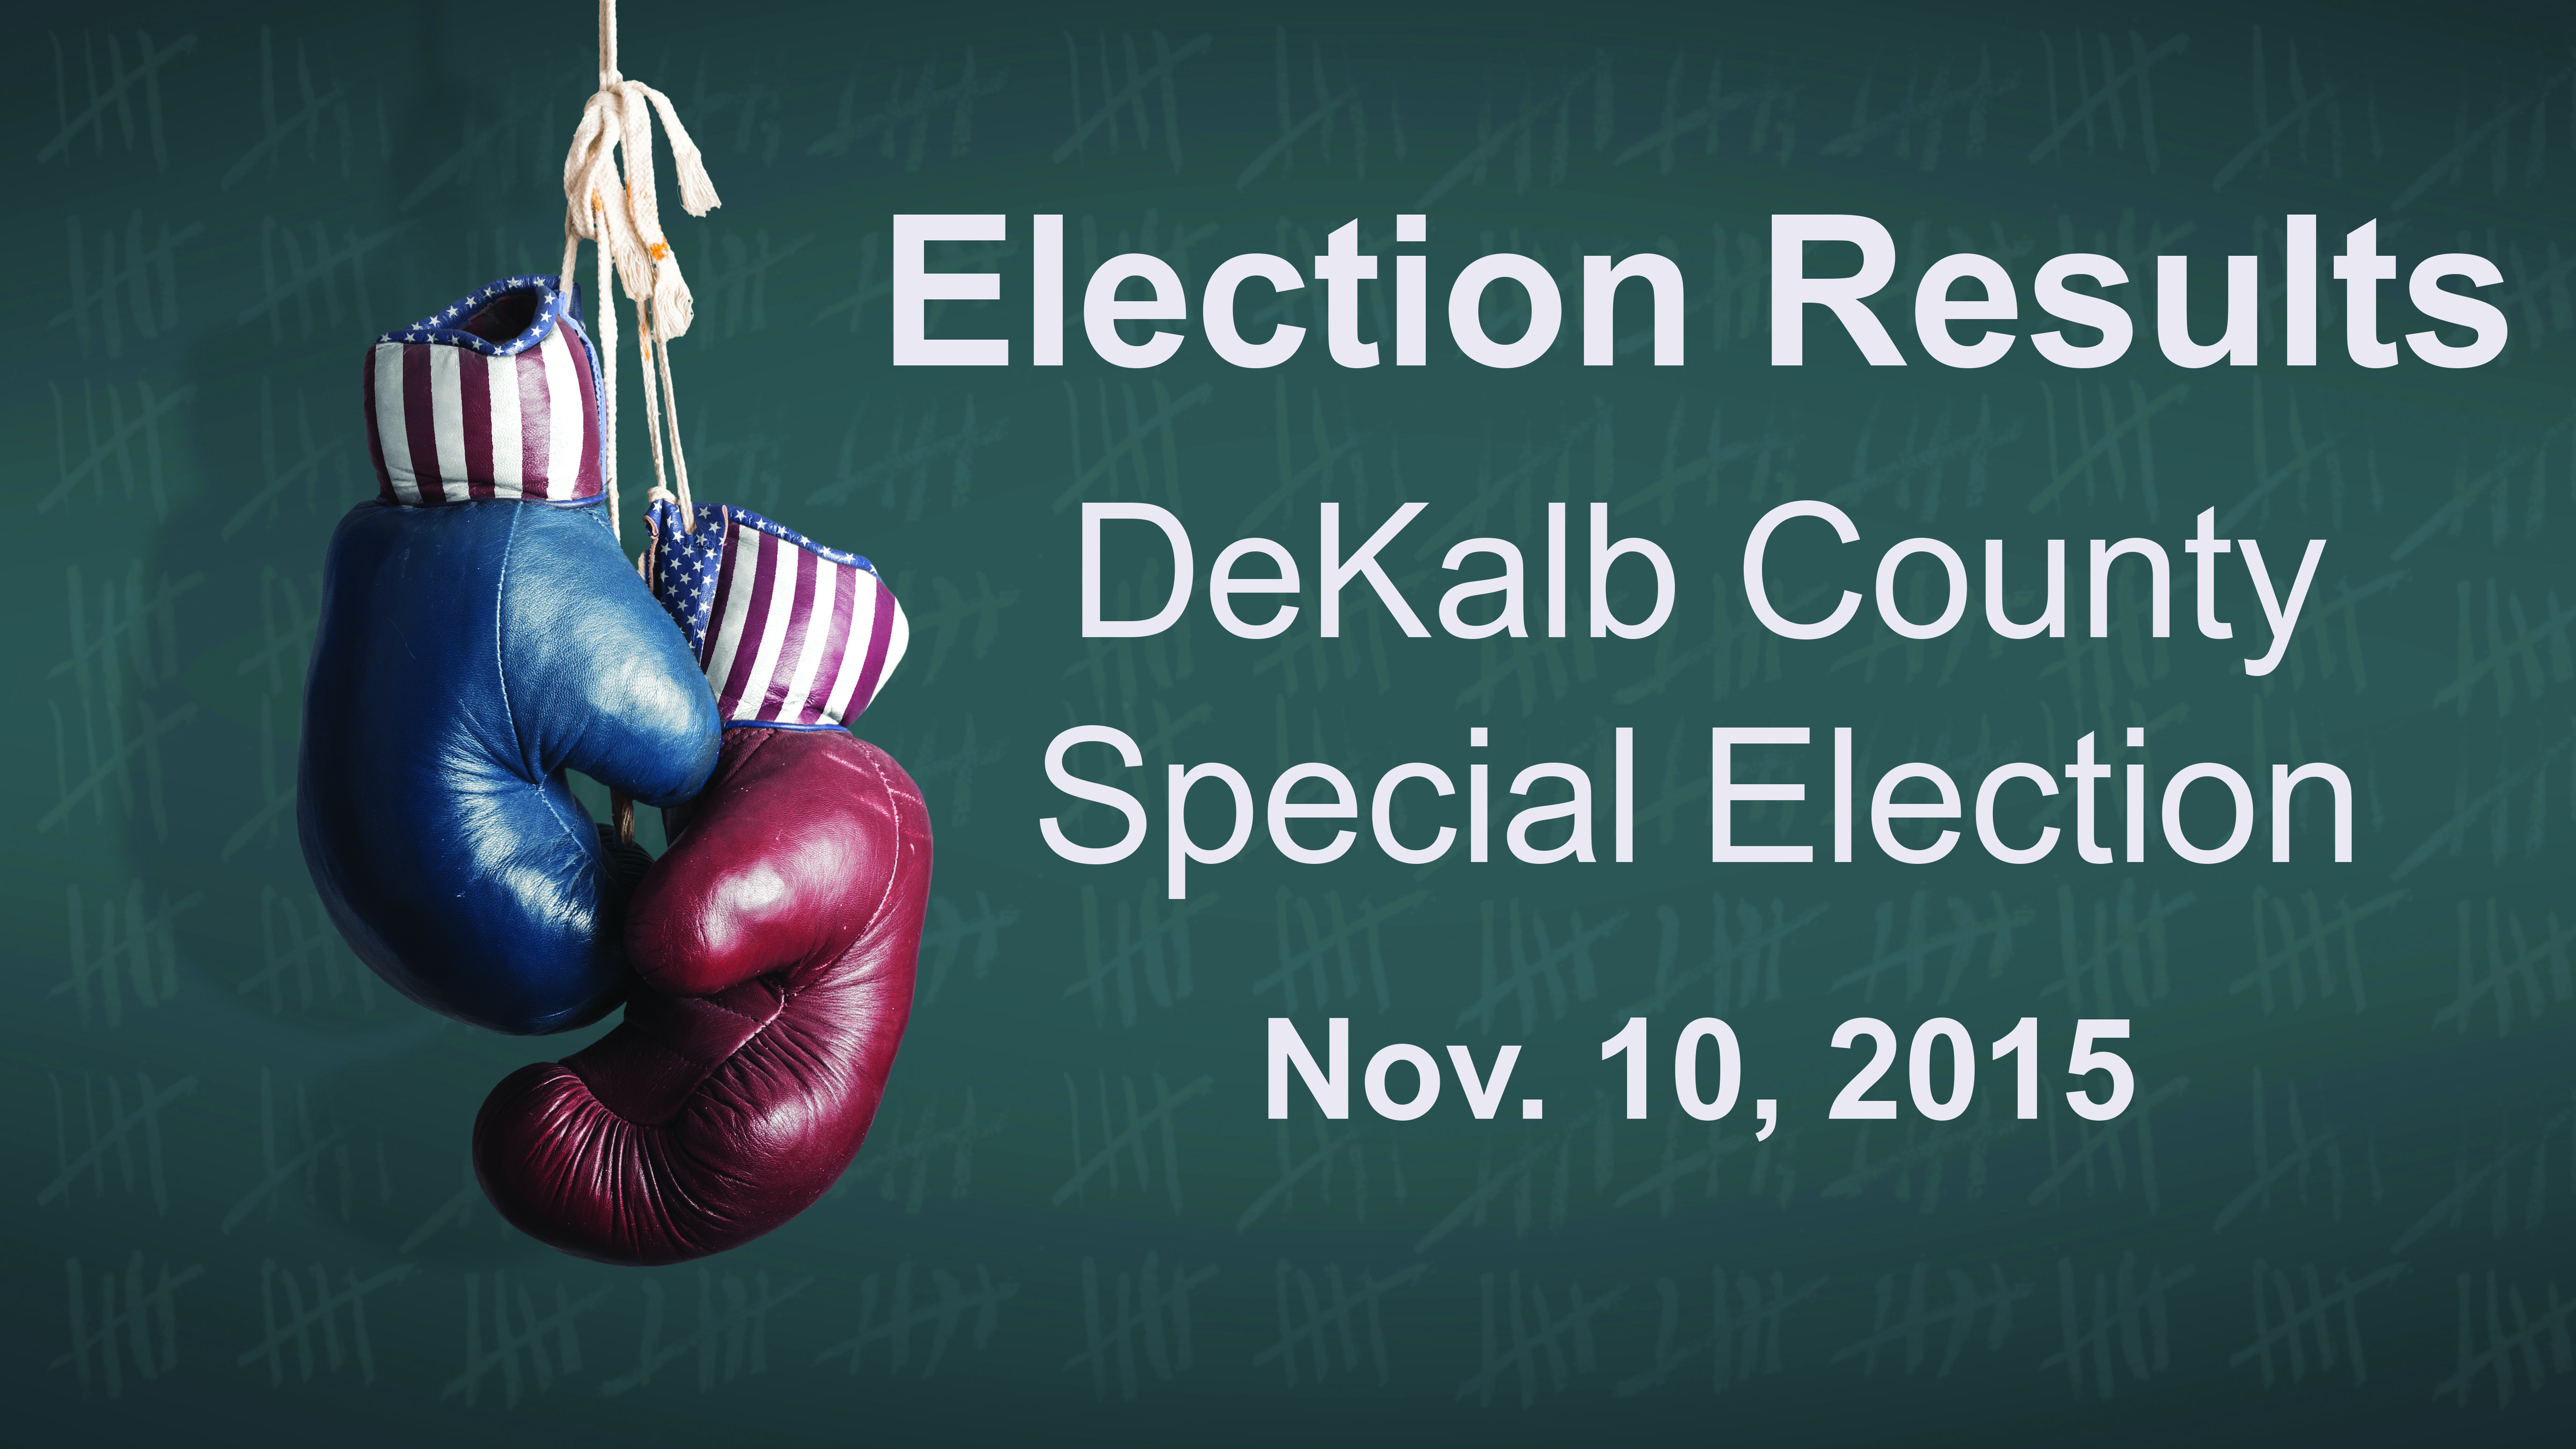 Election Day 2014 - Democrats and Republicans in the campaign